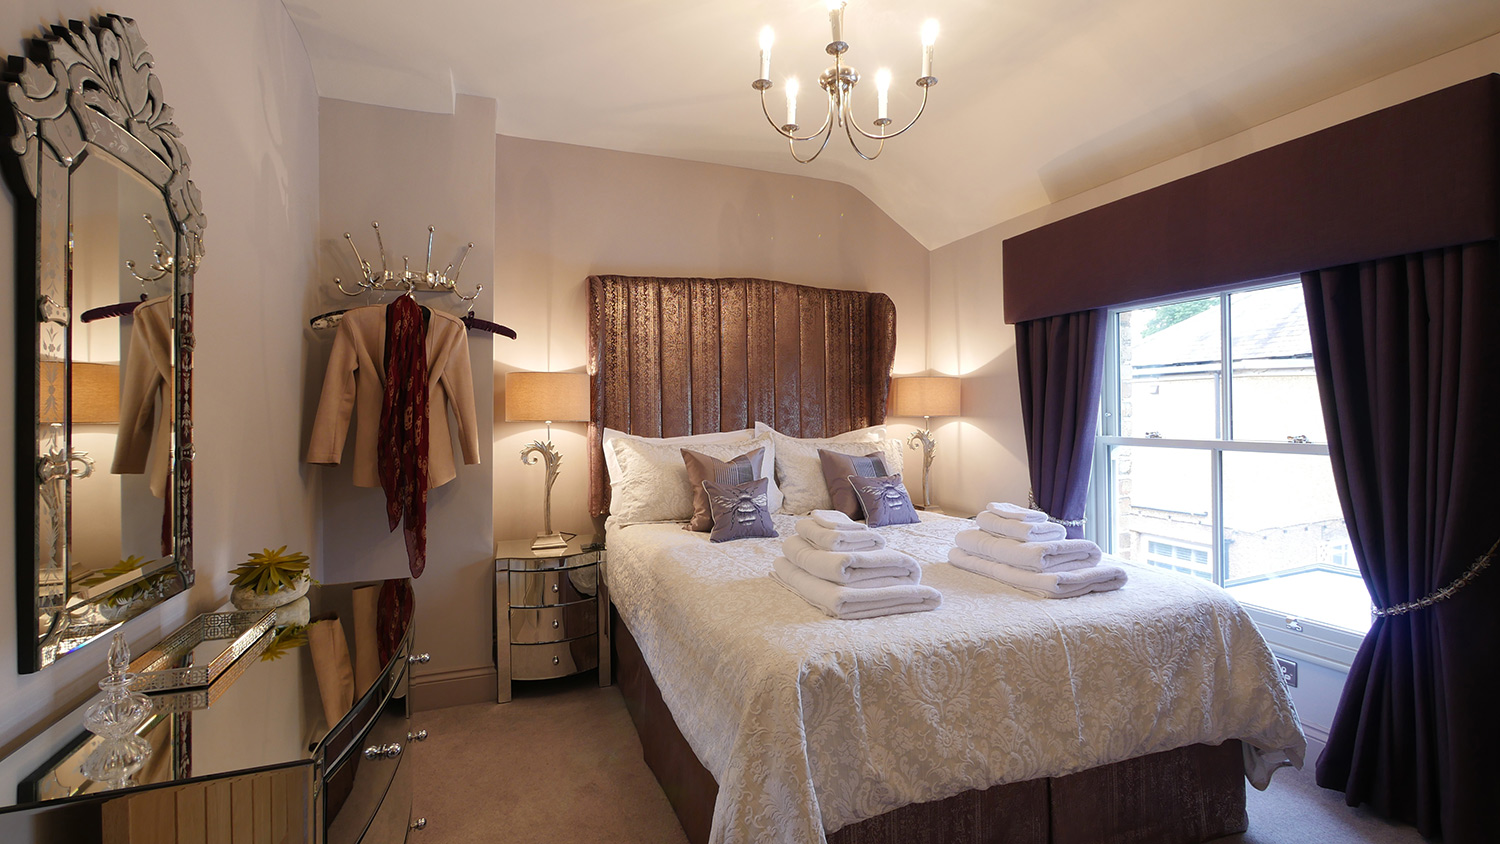 Honeybee Cottage luxury honeymoon accommodation in Northumberland near the coast pets welcome